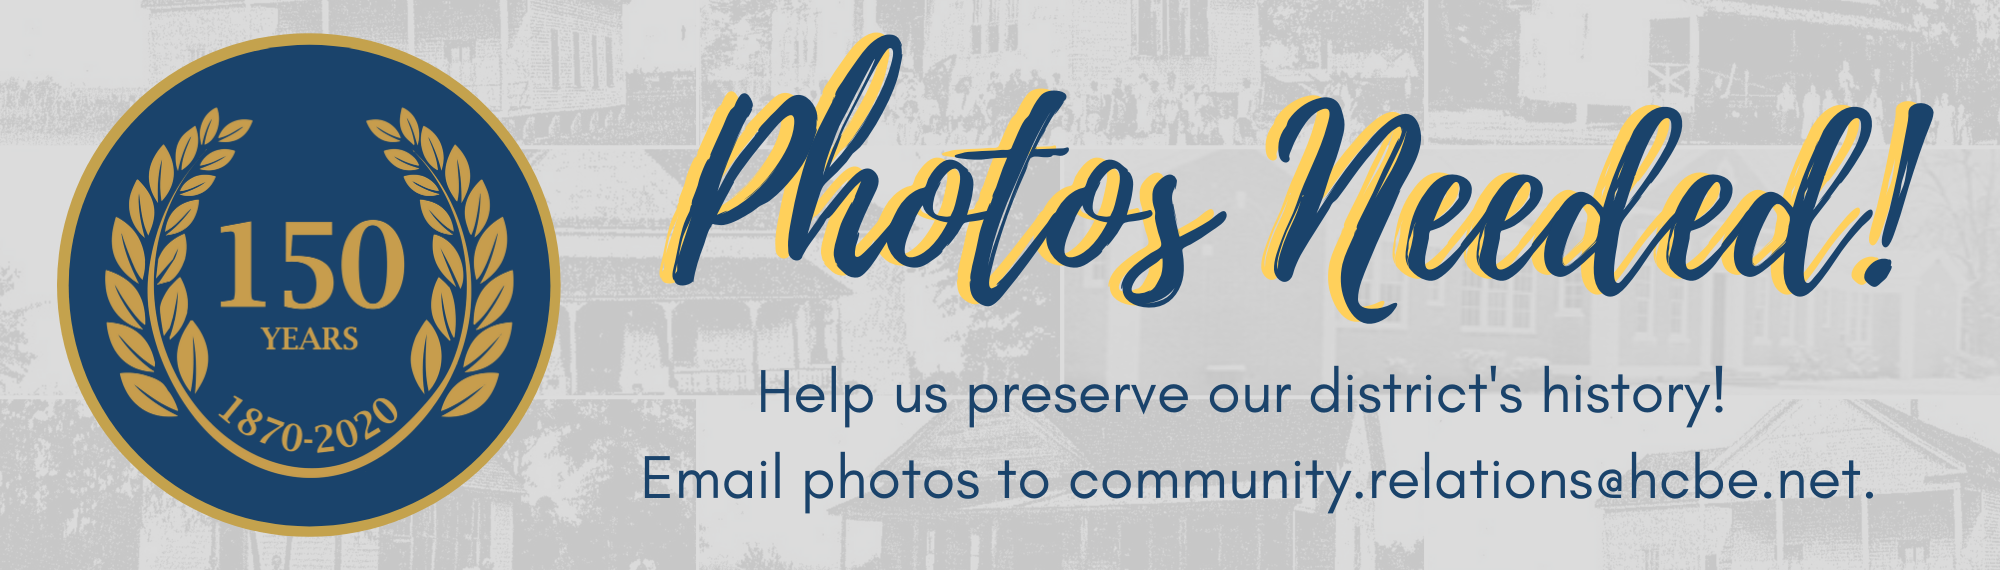 History photos needed. Email pictures to community.relations@hcbe.net.